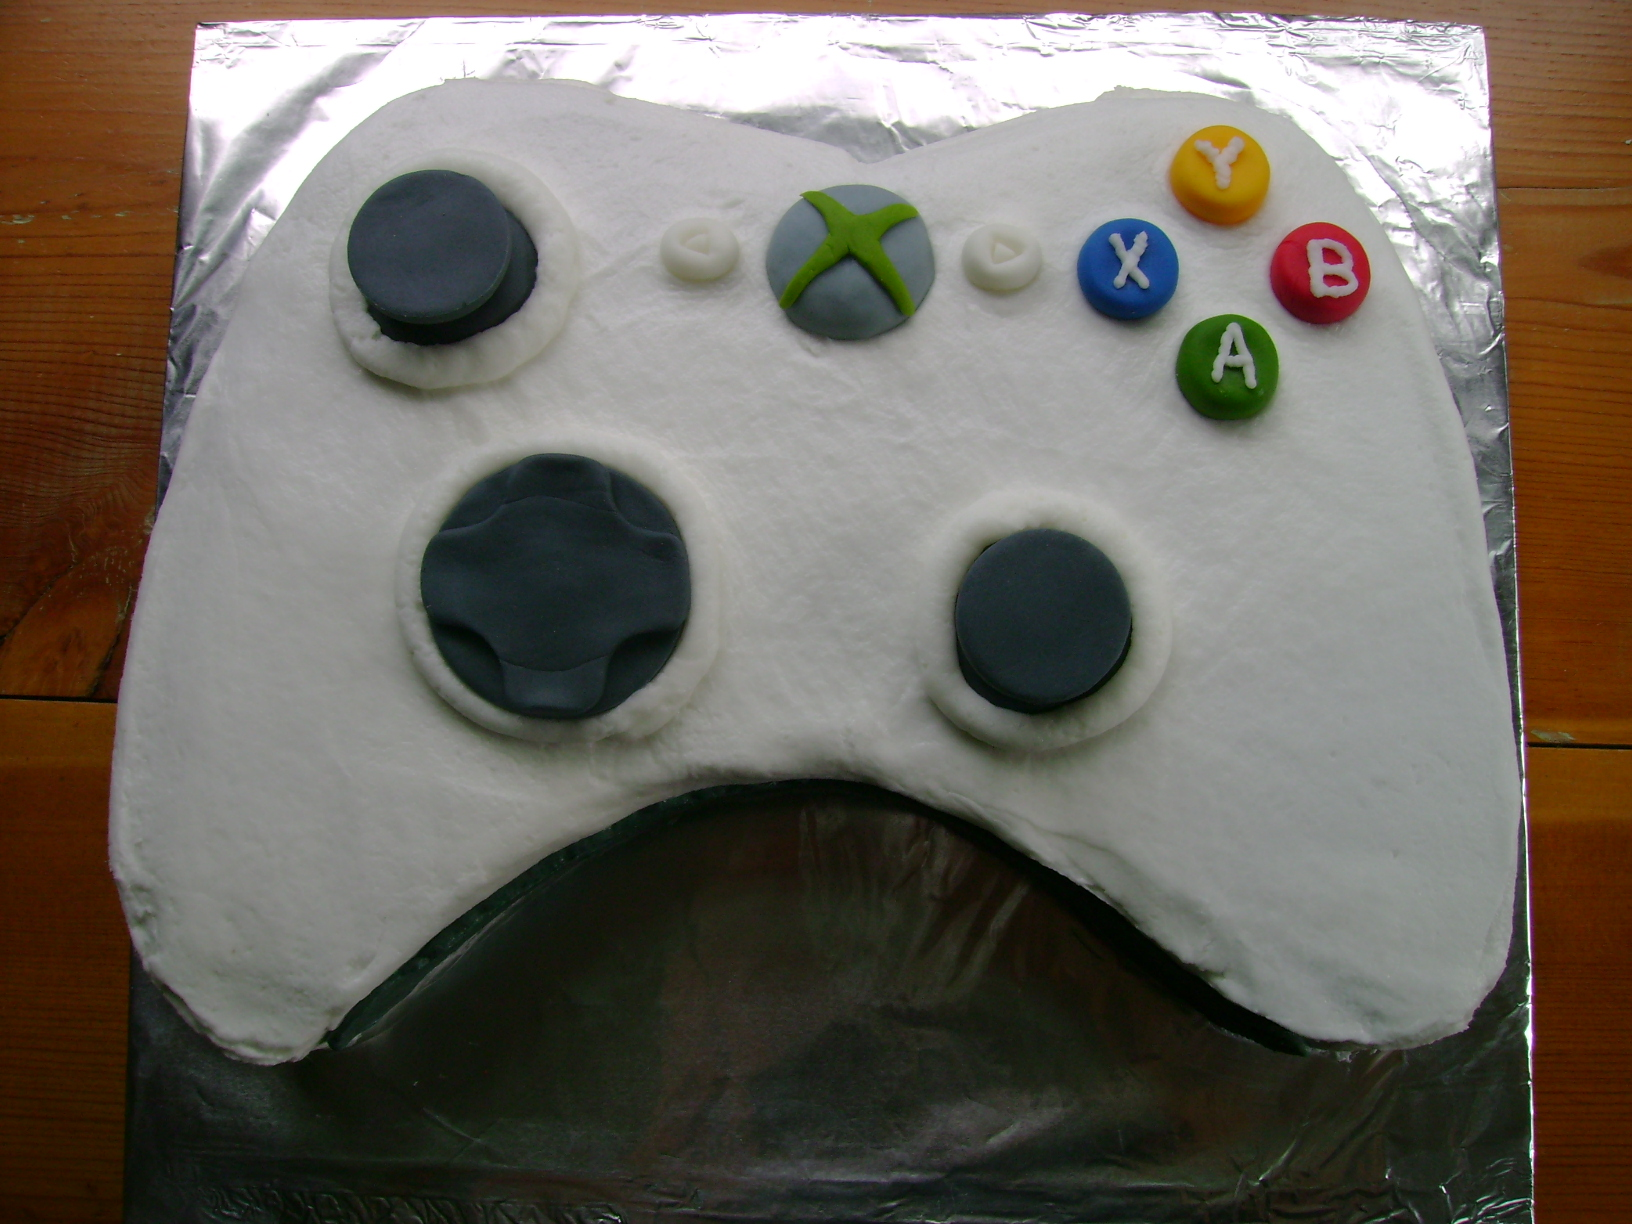 How To Create An Xbox Cake Z As In Zebra